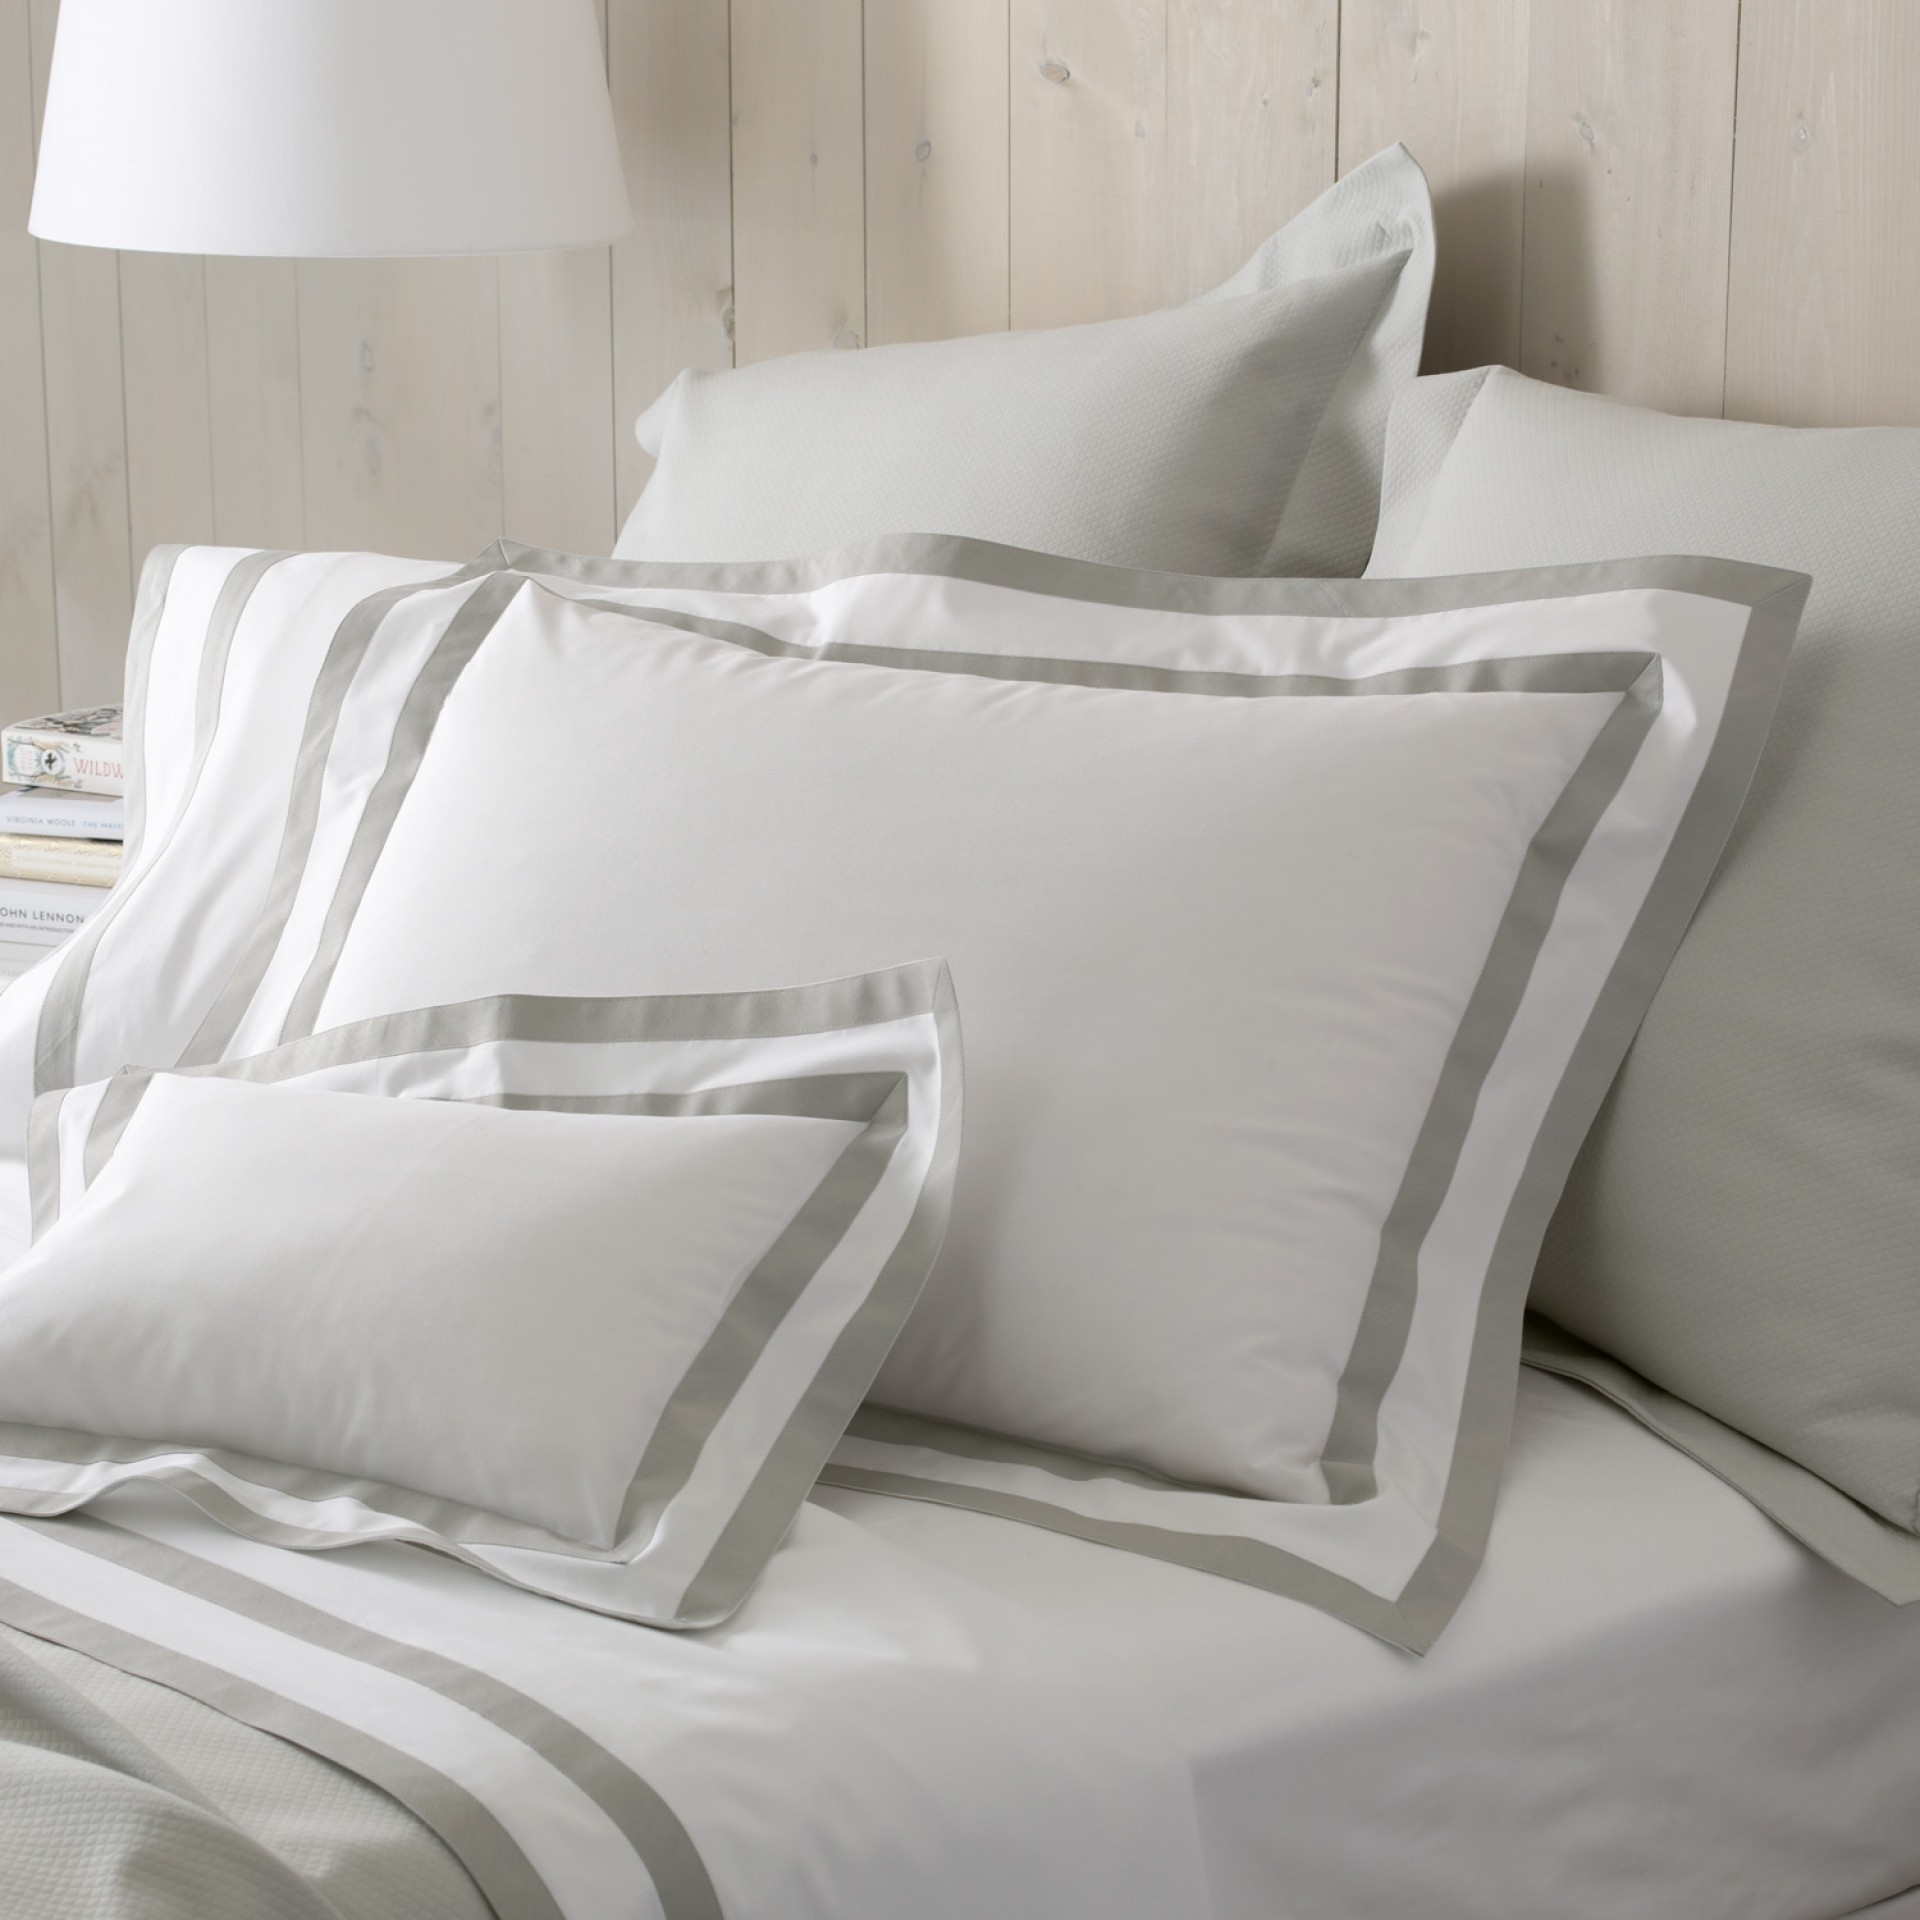 Cool matouk sheets with pillows and white shade table lamp for bedroom with matouk sheets sale